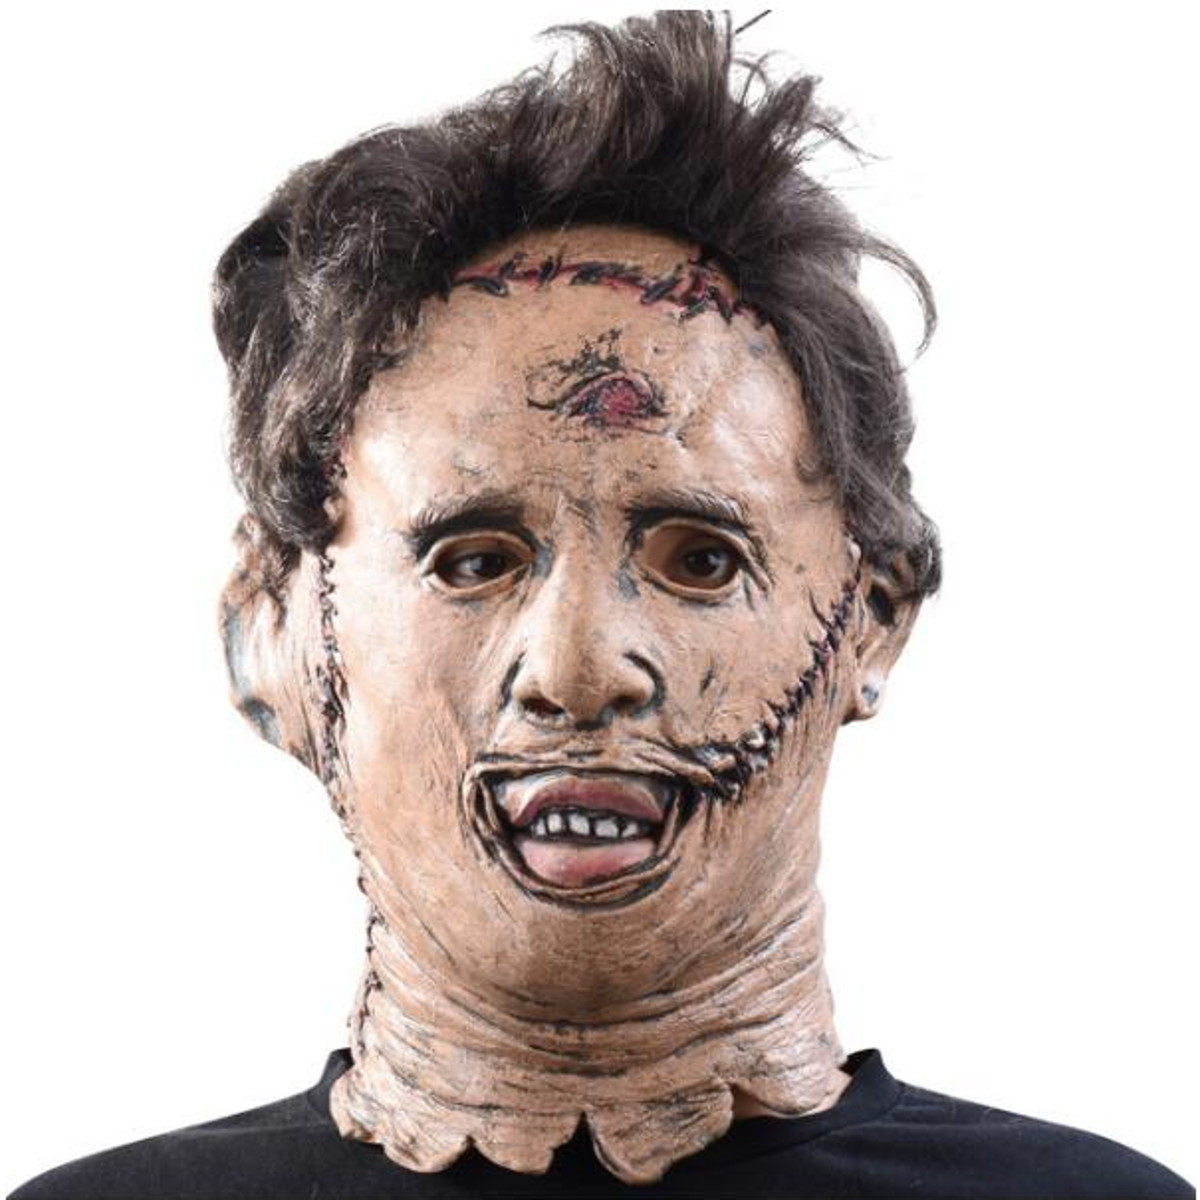 Outdooors Game Halloween Texas Chain Saw Scary Face Mask Hair Costume Adult Horror